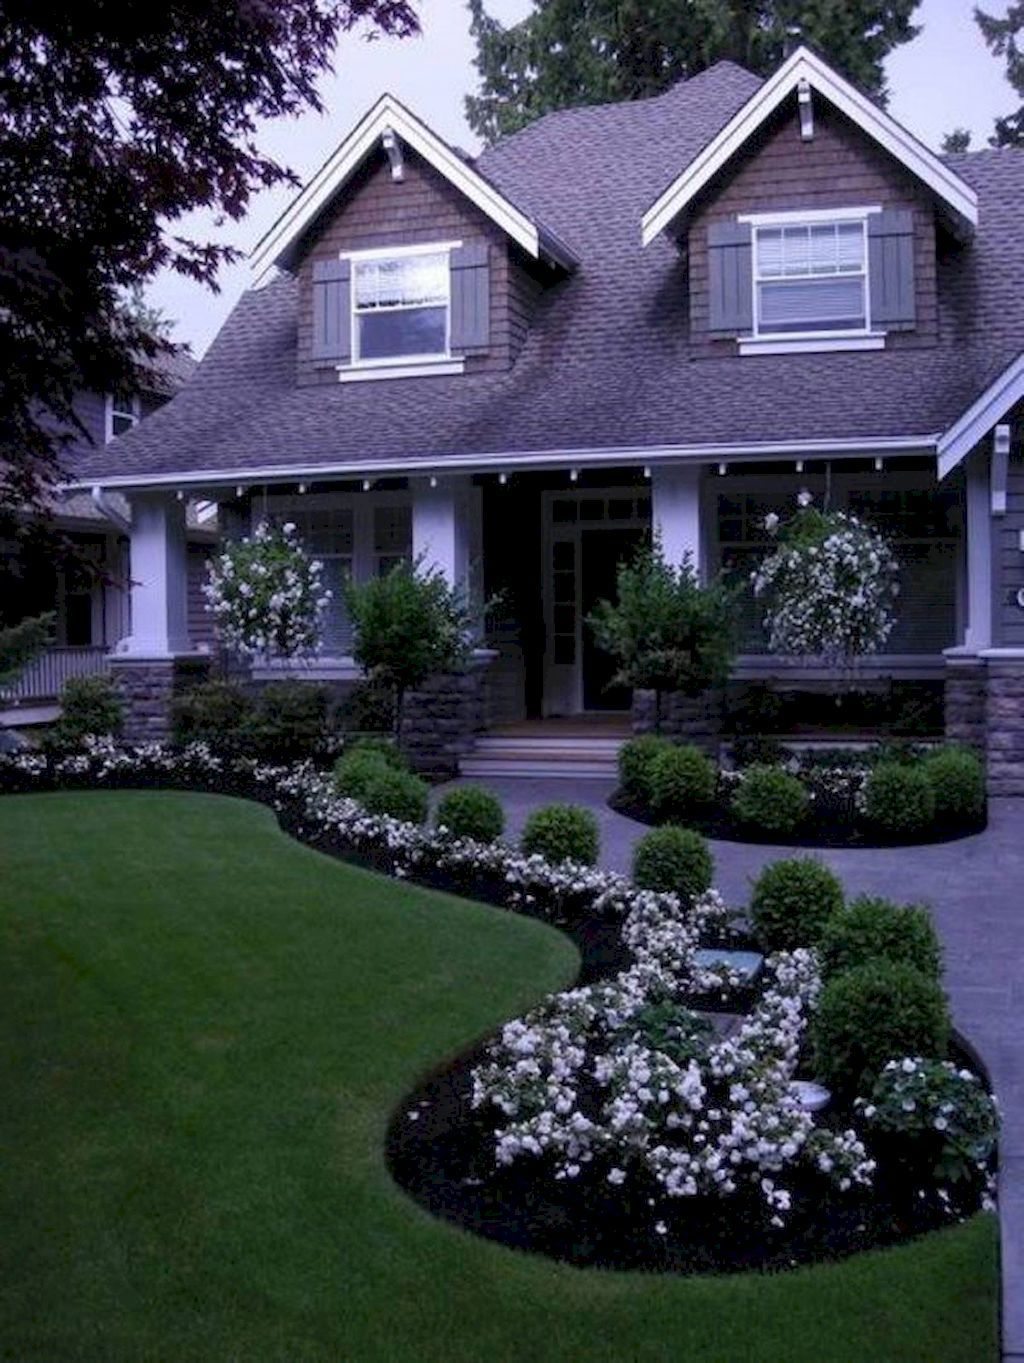 40 beautiful front yard landscaping ideas yard for Pictures of front yard landscapes